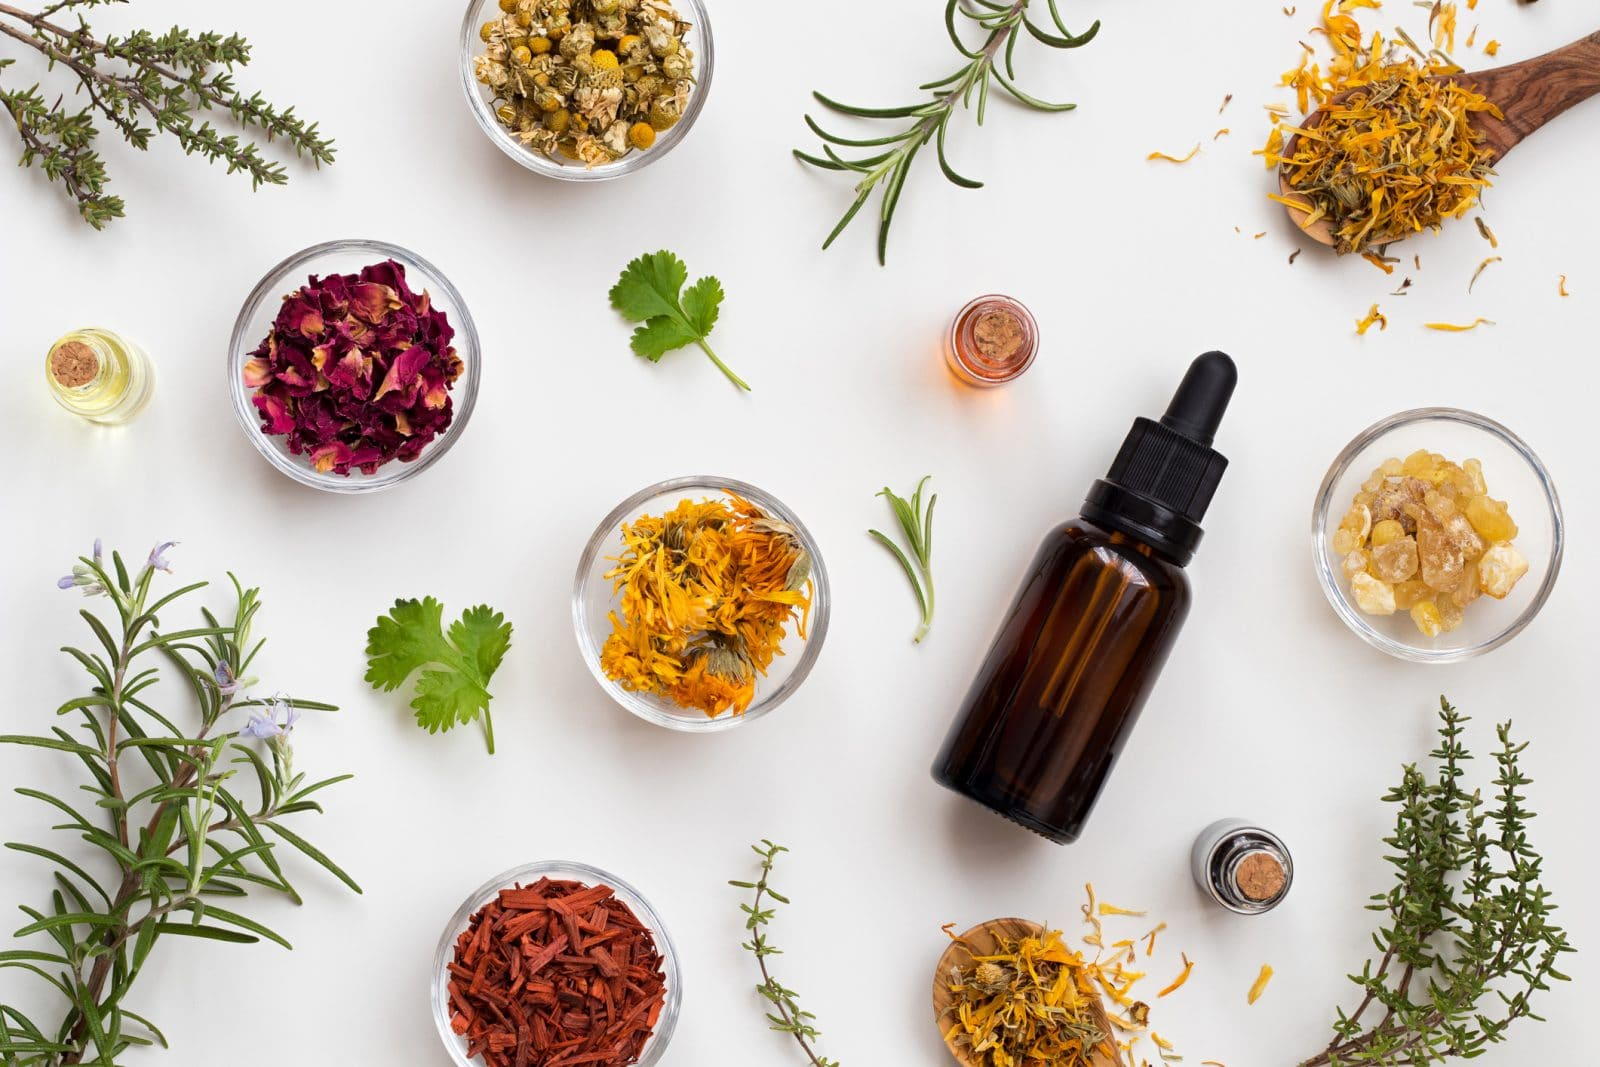 Indoor Air Quality Concerns: Essential Oils